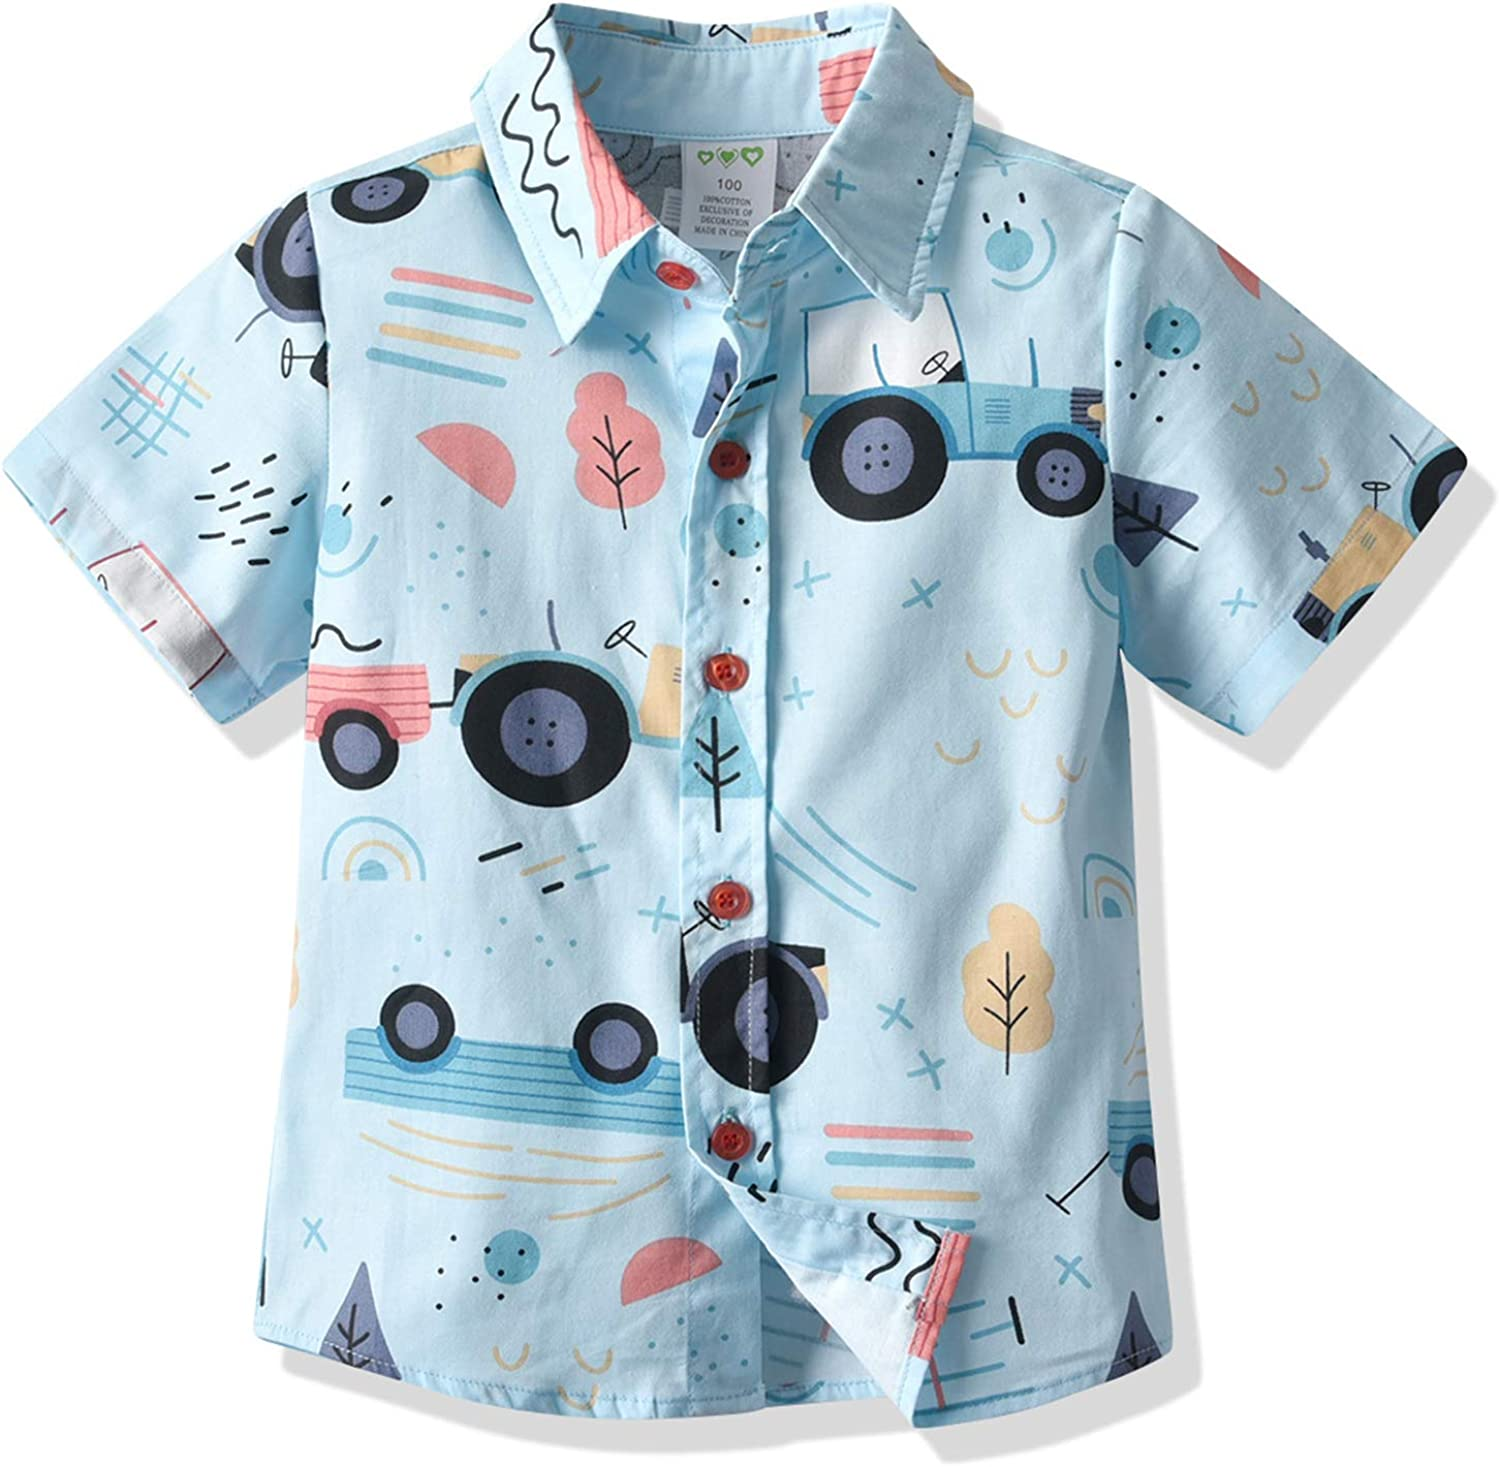 Toddler Baby Boys Hawaiian Shirts Button Down Short Sleeve Striped Plaid Print Bow Tie Casual Tops T-Shirt: Clothing, Shoes & Jewelry